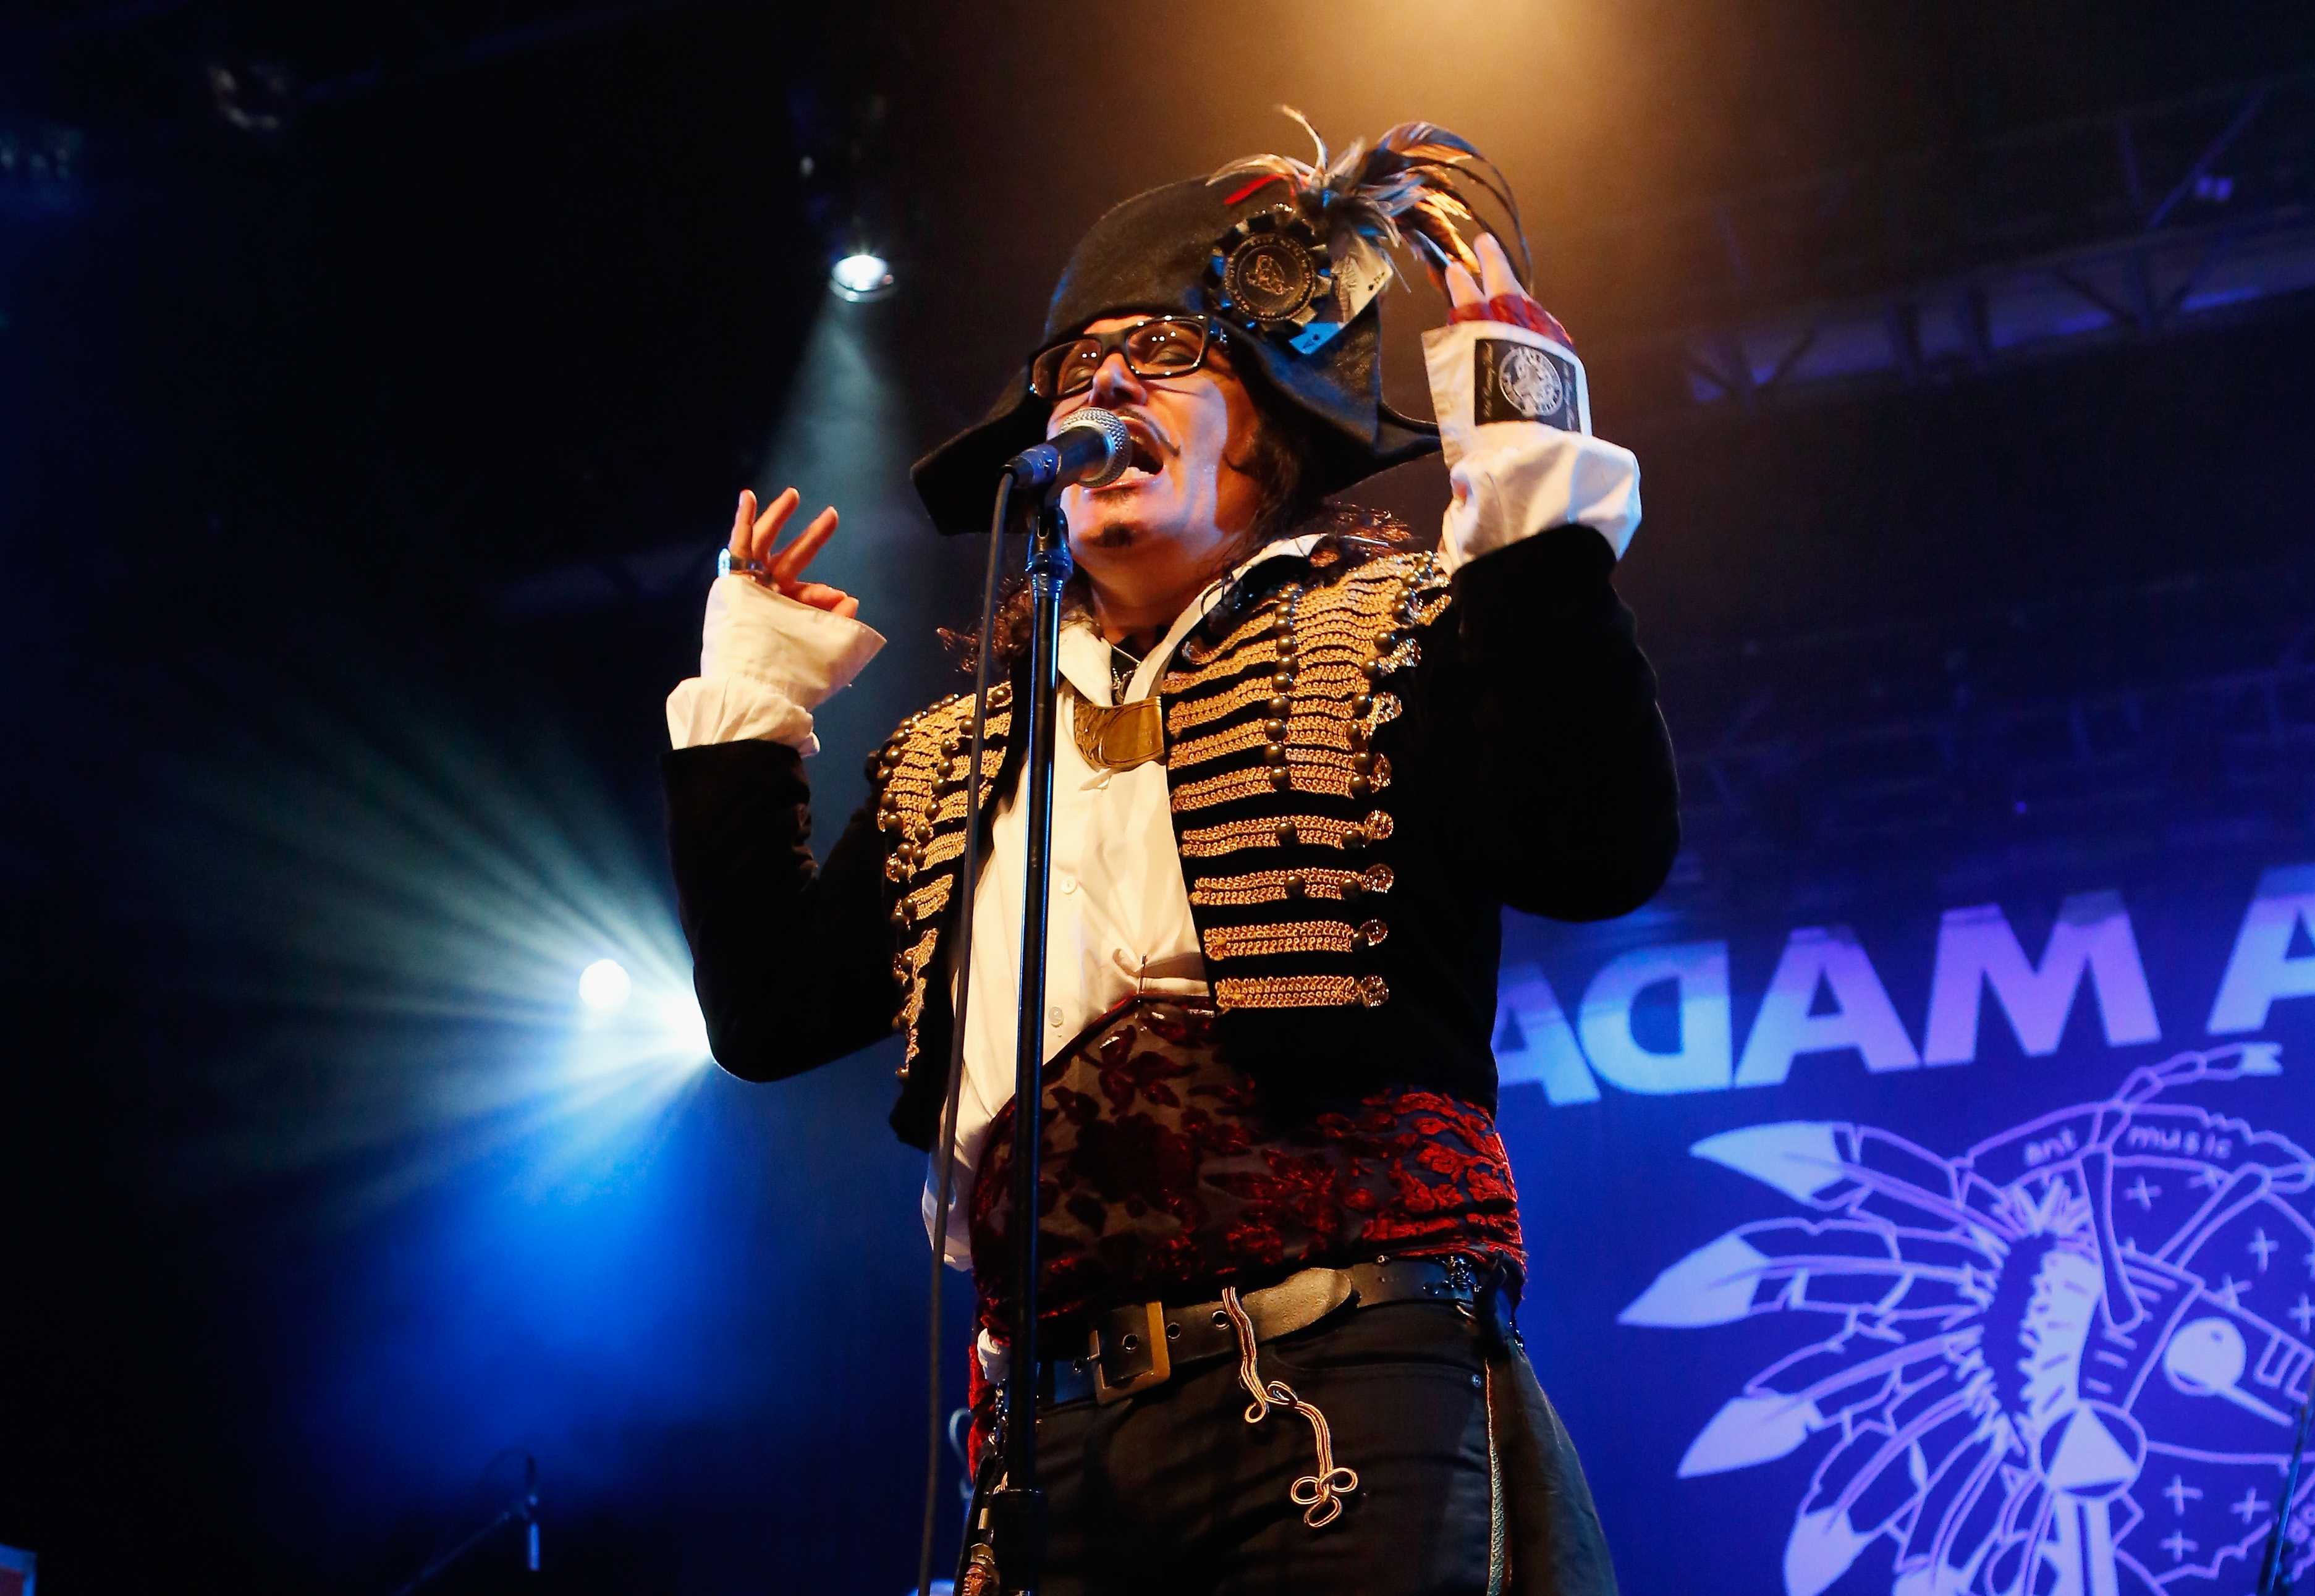 Adam Ant is back in form with first new album in 17 years - CBS News